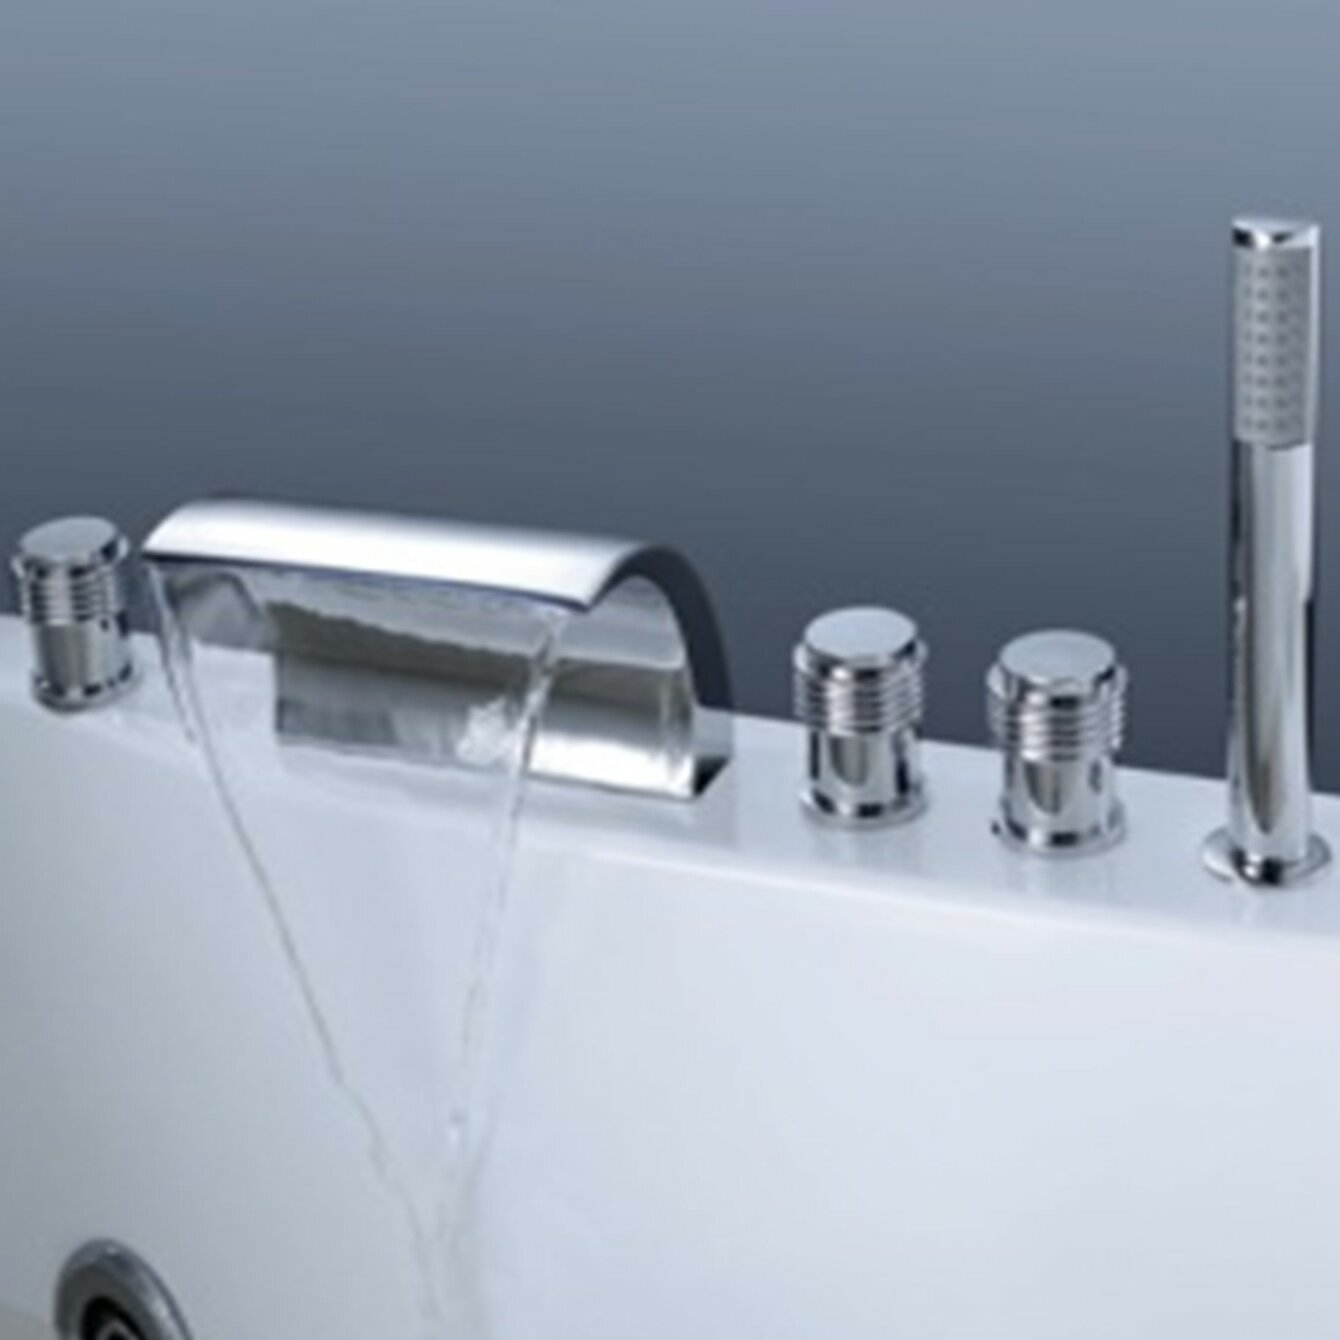 Della Triple Handle Deck Mounted Roman Tub Faucet With Hand Shower